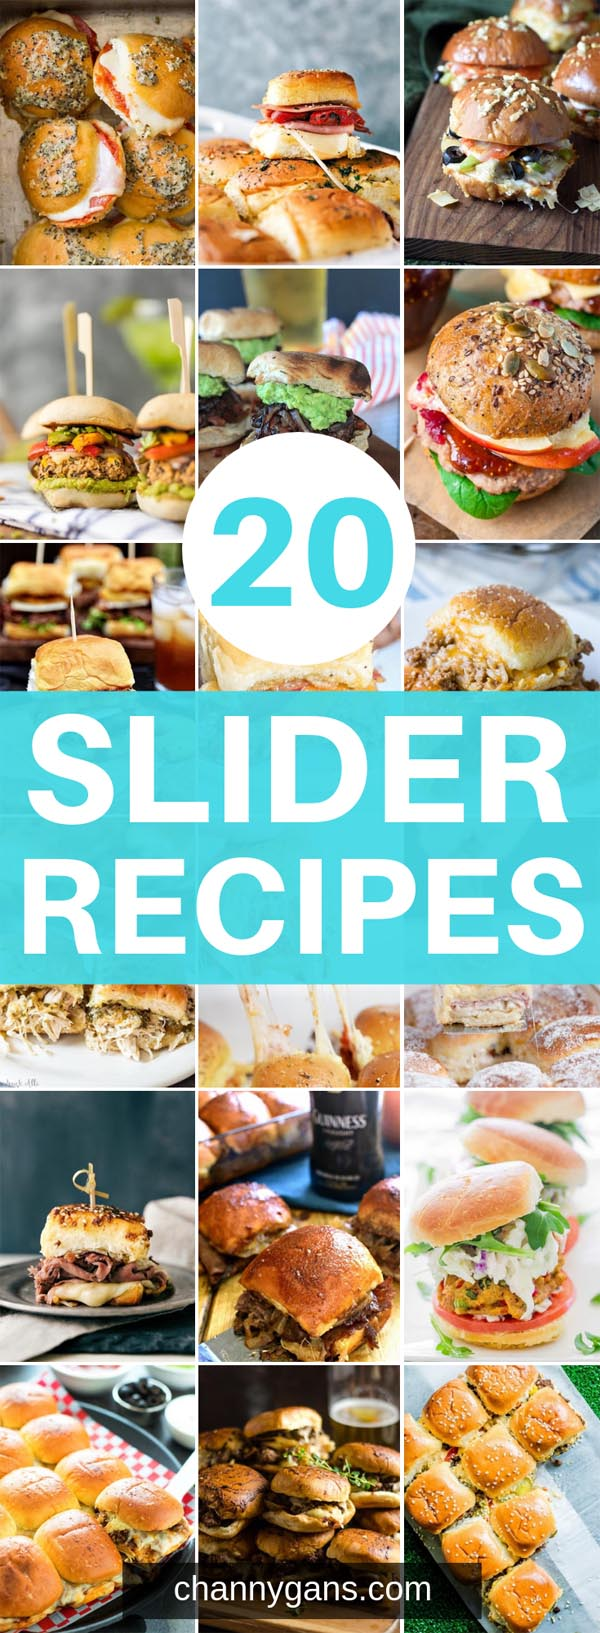 20 Slider Recipes. These slider recipes are perfect if you're hosting a party or having friends or family over for a quick and easy dinner.